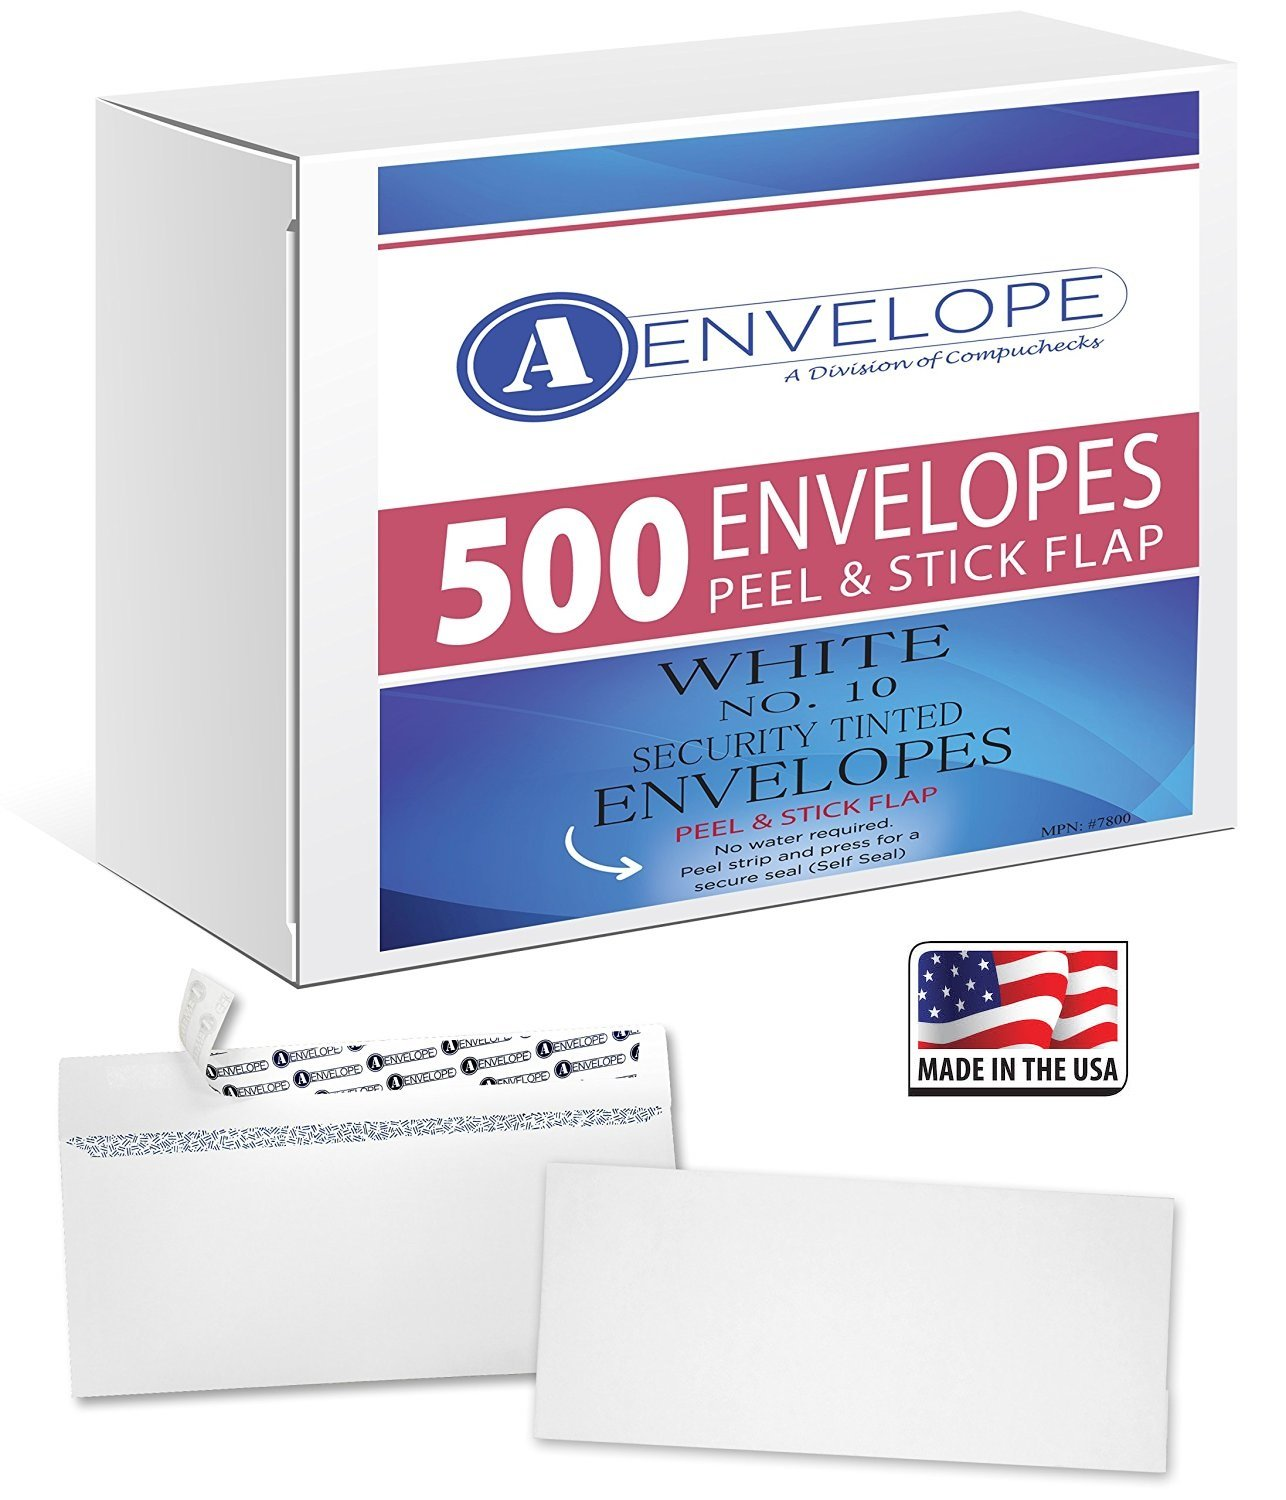 "#10 Security Envelopes - SELF SEAL - Windowless, (500 Count) 4""1/8 X 9""1/2 A-Envelope Business & Personal Envelopes - Security Tint - Great for: Letters, Tax Forms, Statements & Checks"